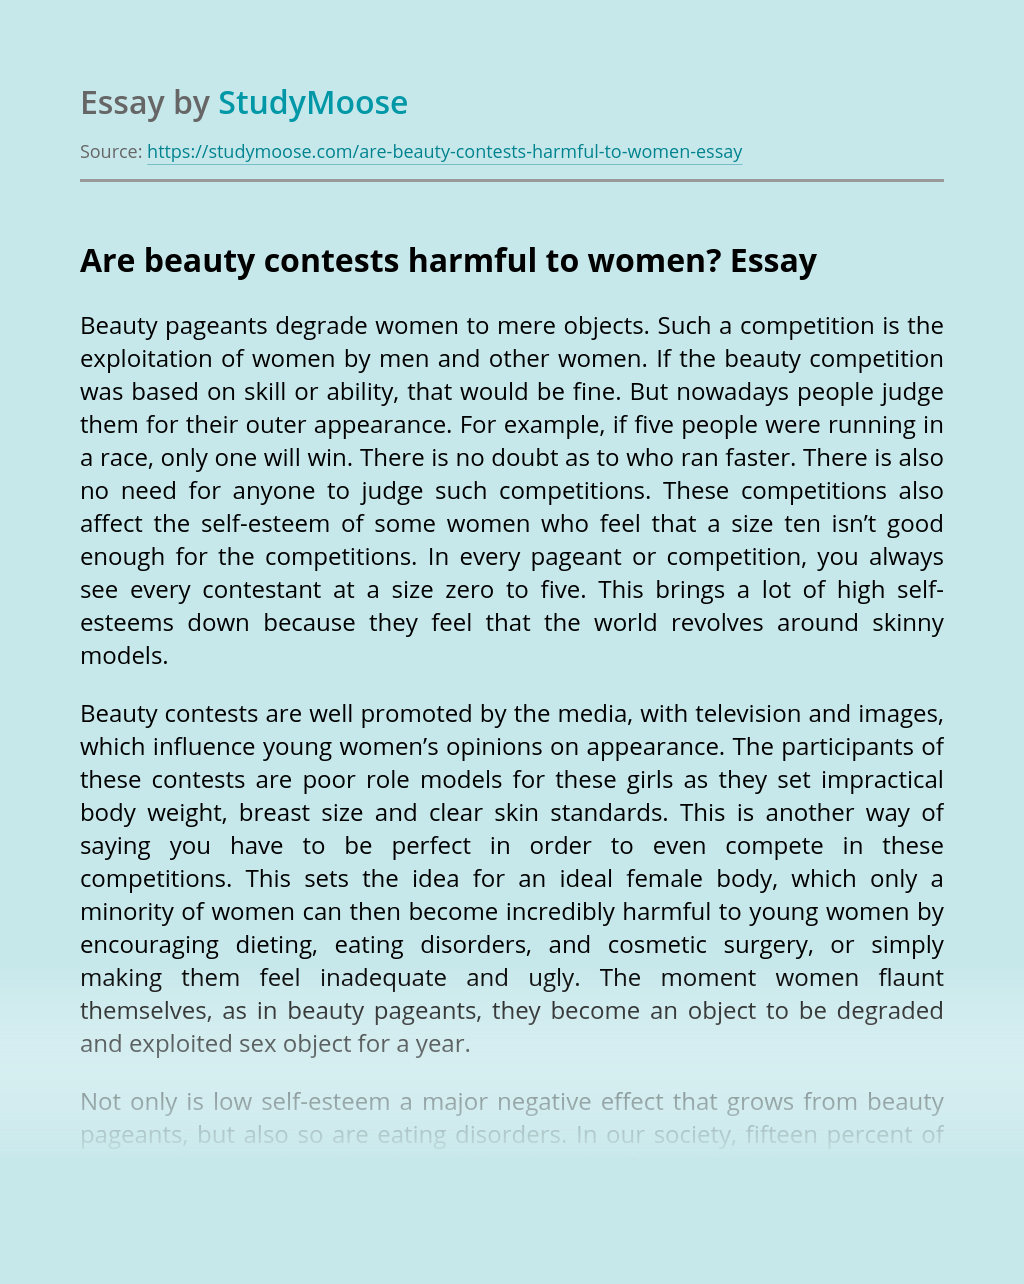 Are beauty contests harmful to women?